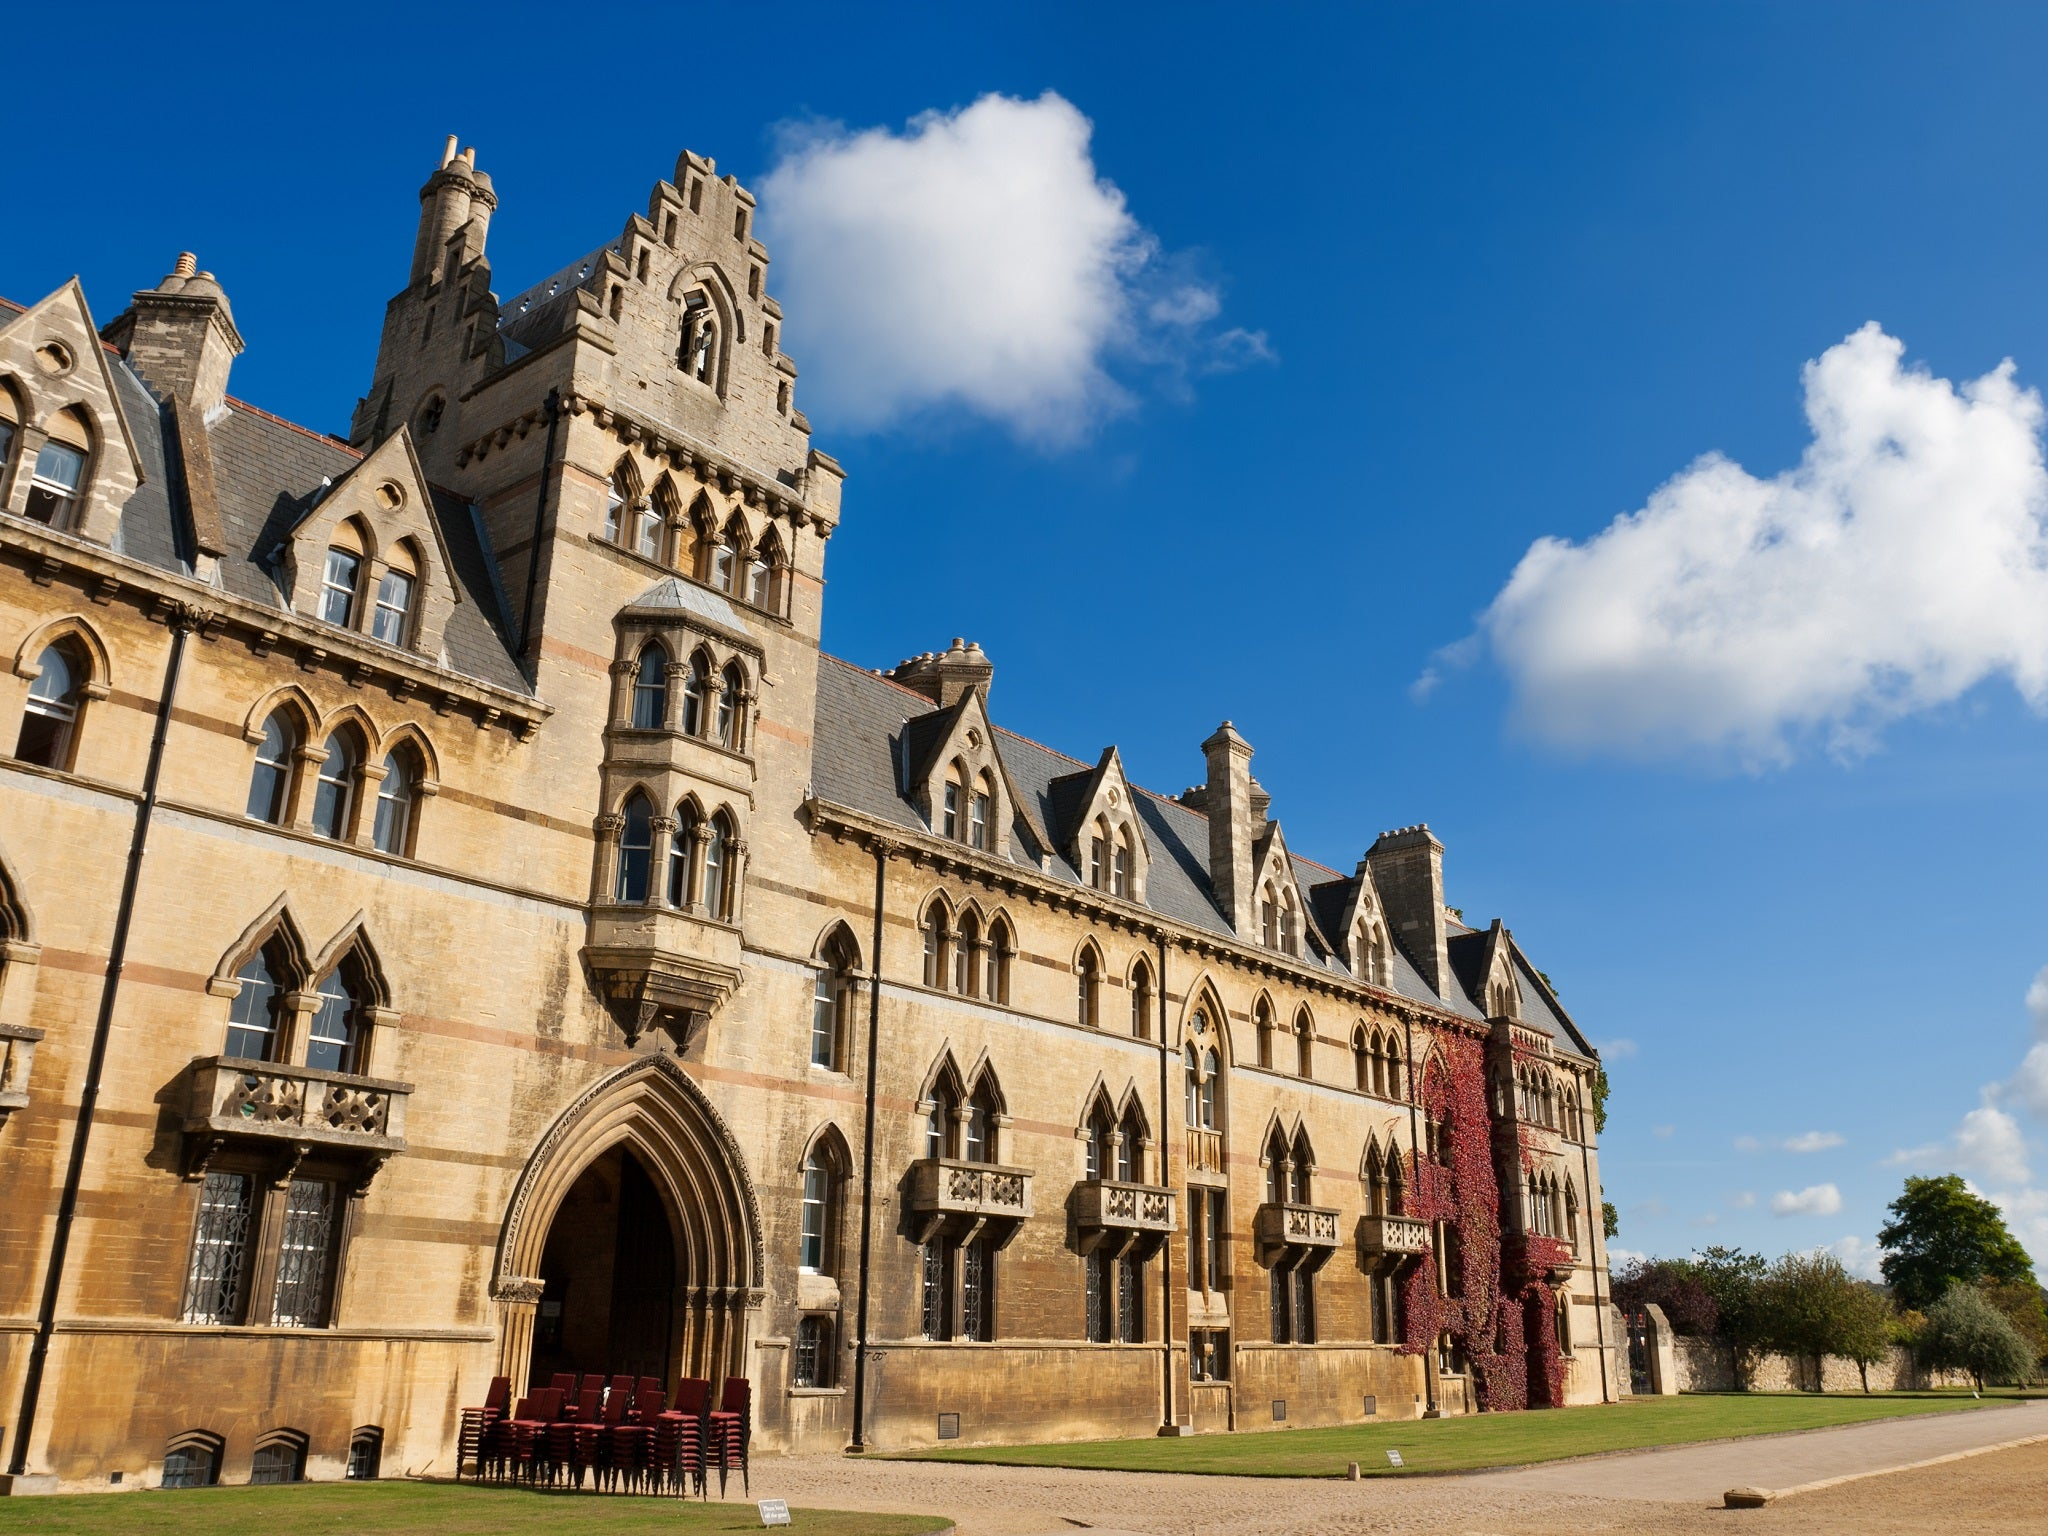 oxford university online dating The university of oxford (formally the chancellor masters and scholars of the university of oxford) is a collegiate research university located in oxford, england.